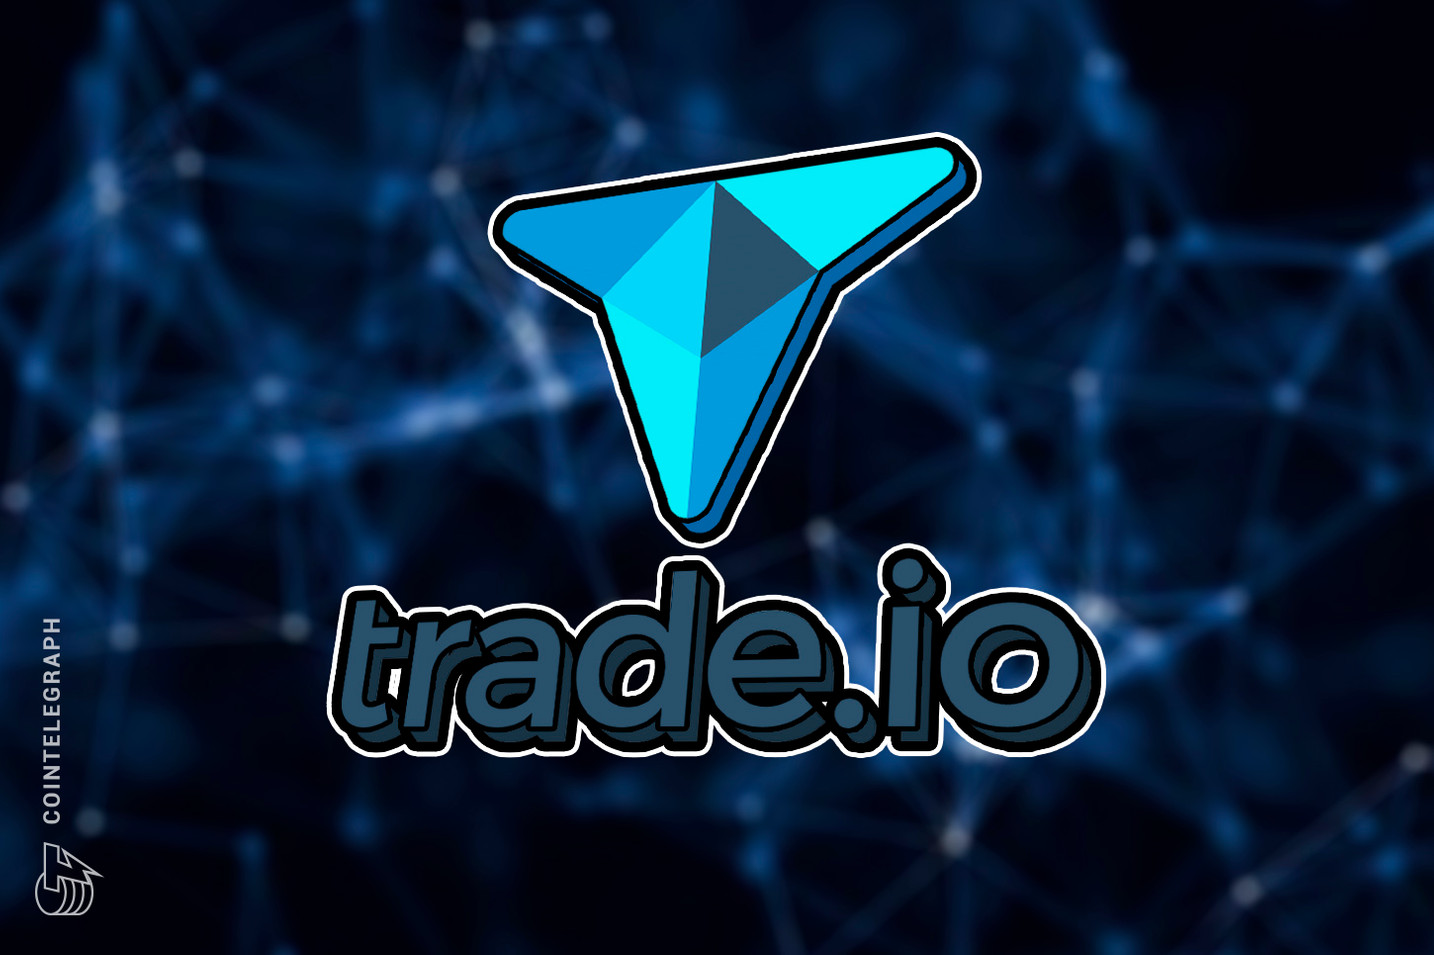 Trade.io's TIO To Be The First Cryptocurrency After Bitcoin To Be Offered as a Payment Method for Regulated Brokers of FX / CFDs